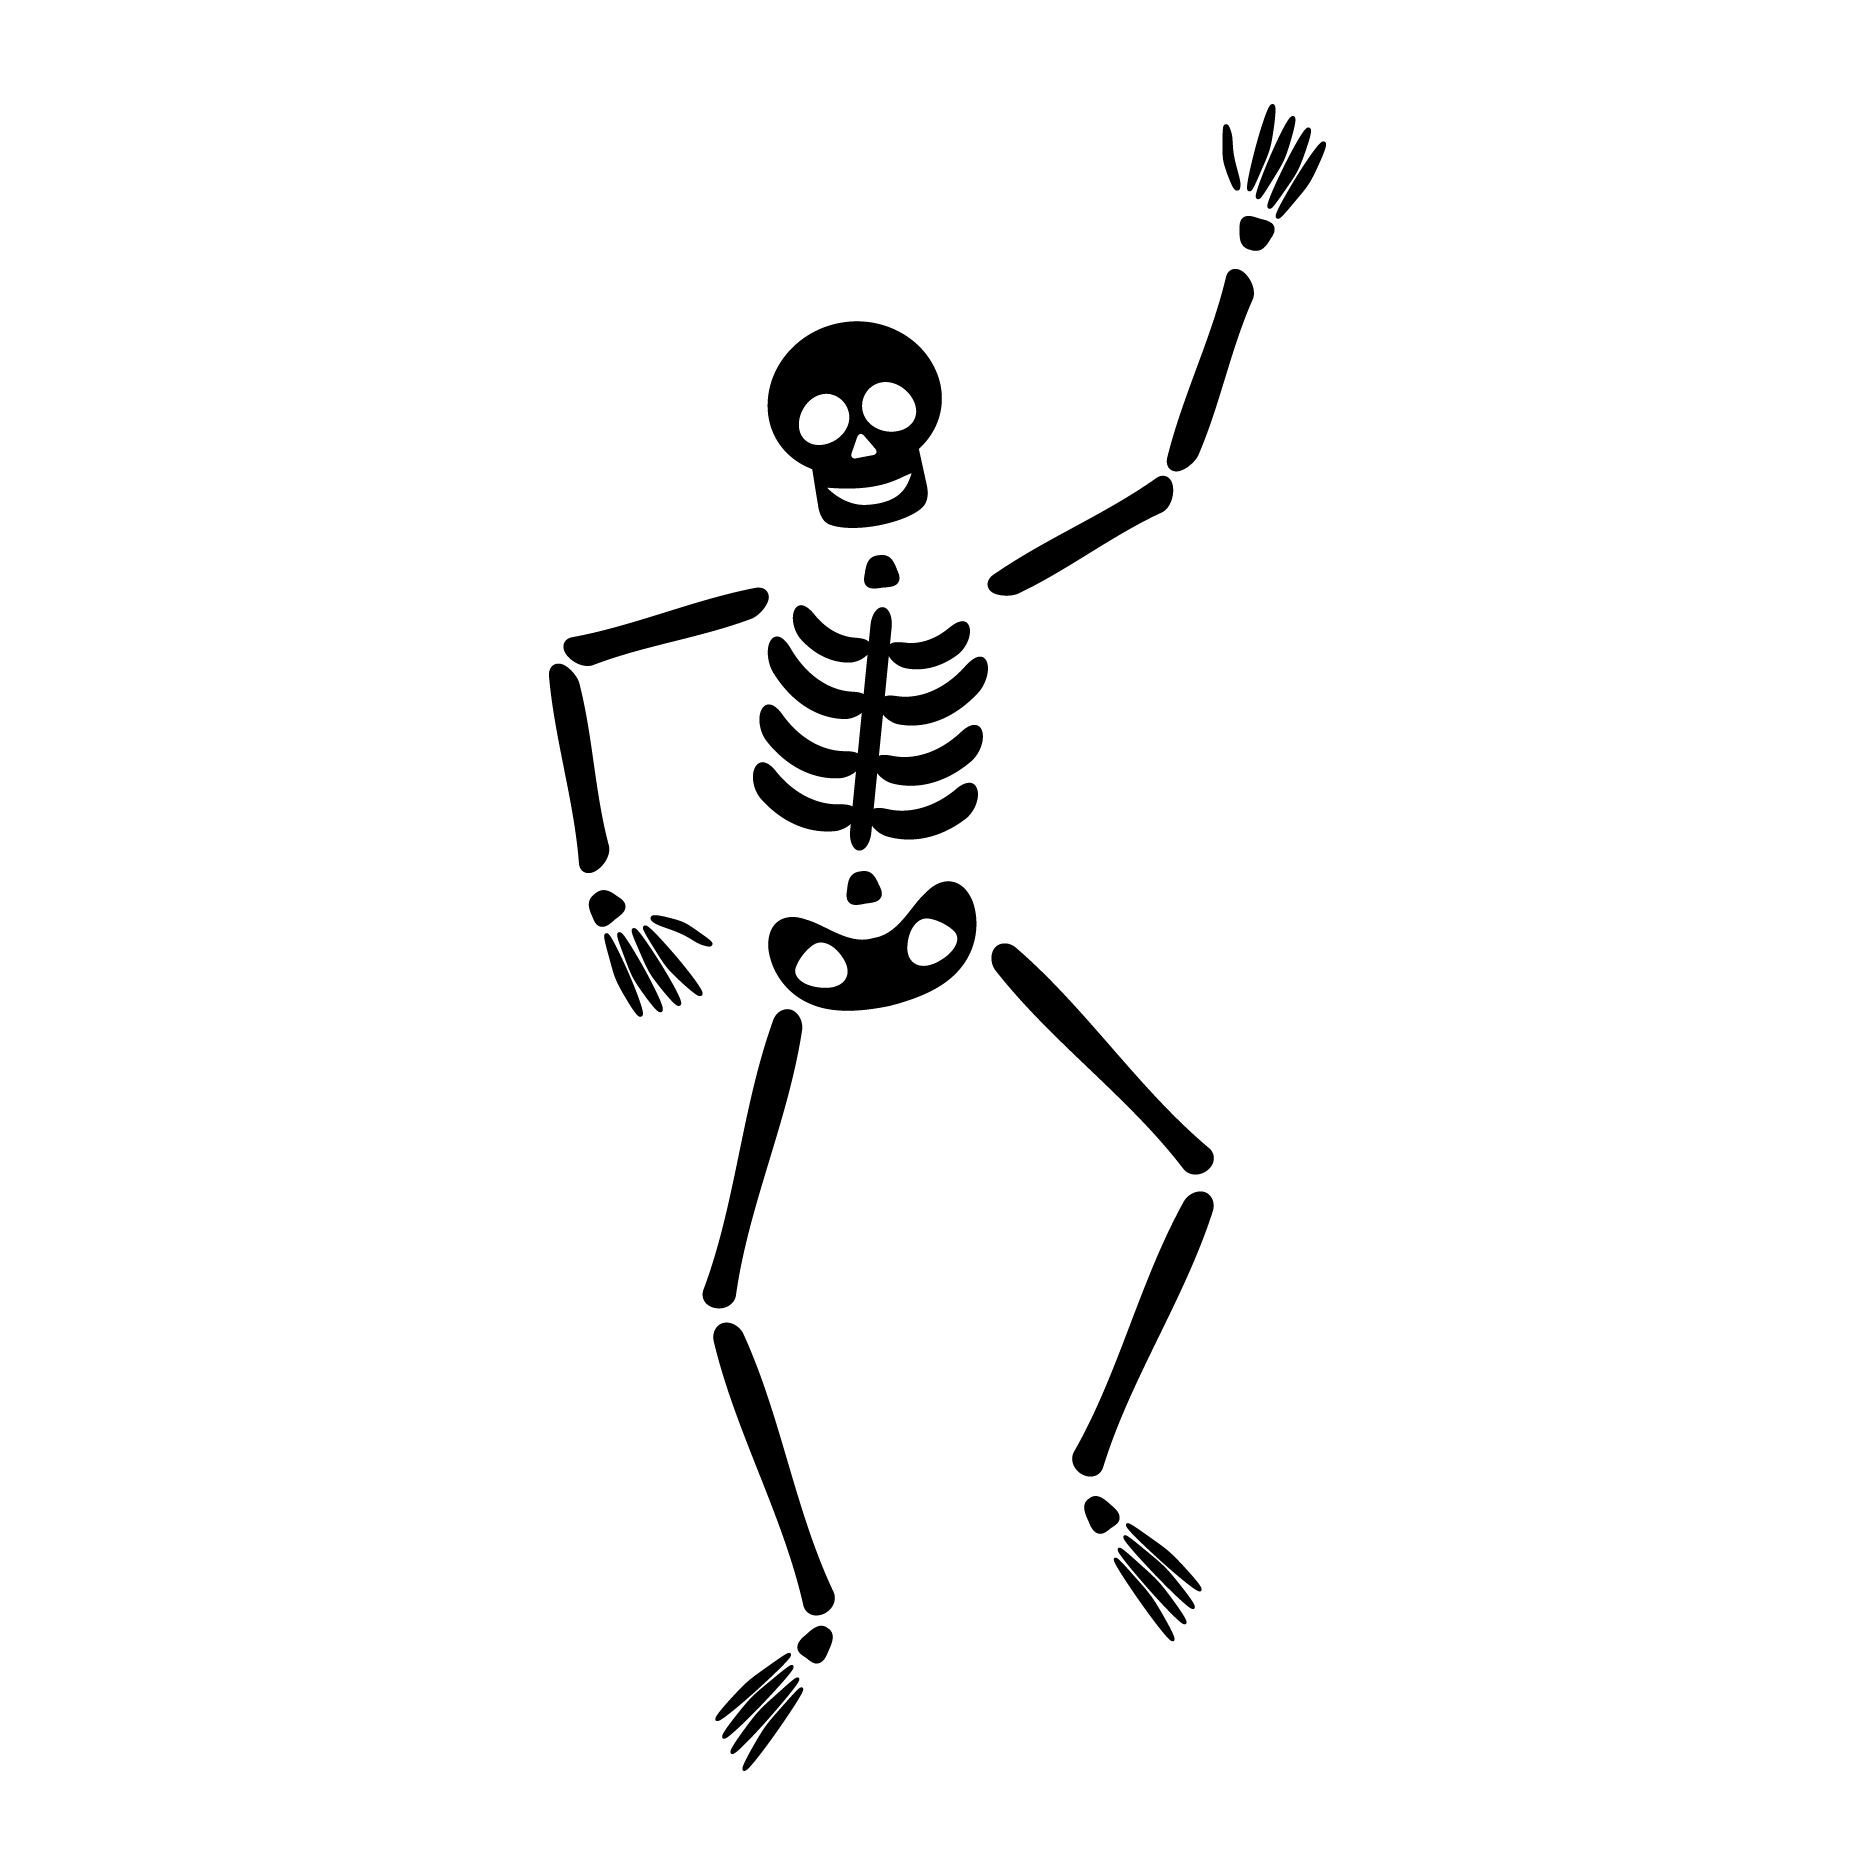 Billy Skeleton Wall Quotes Decal